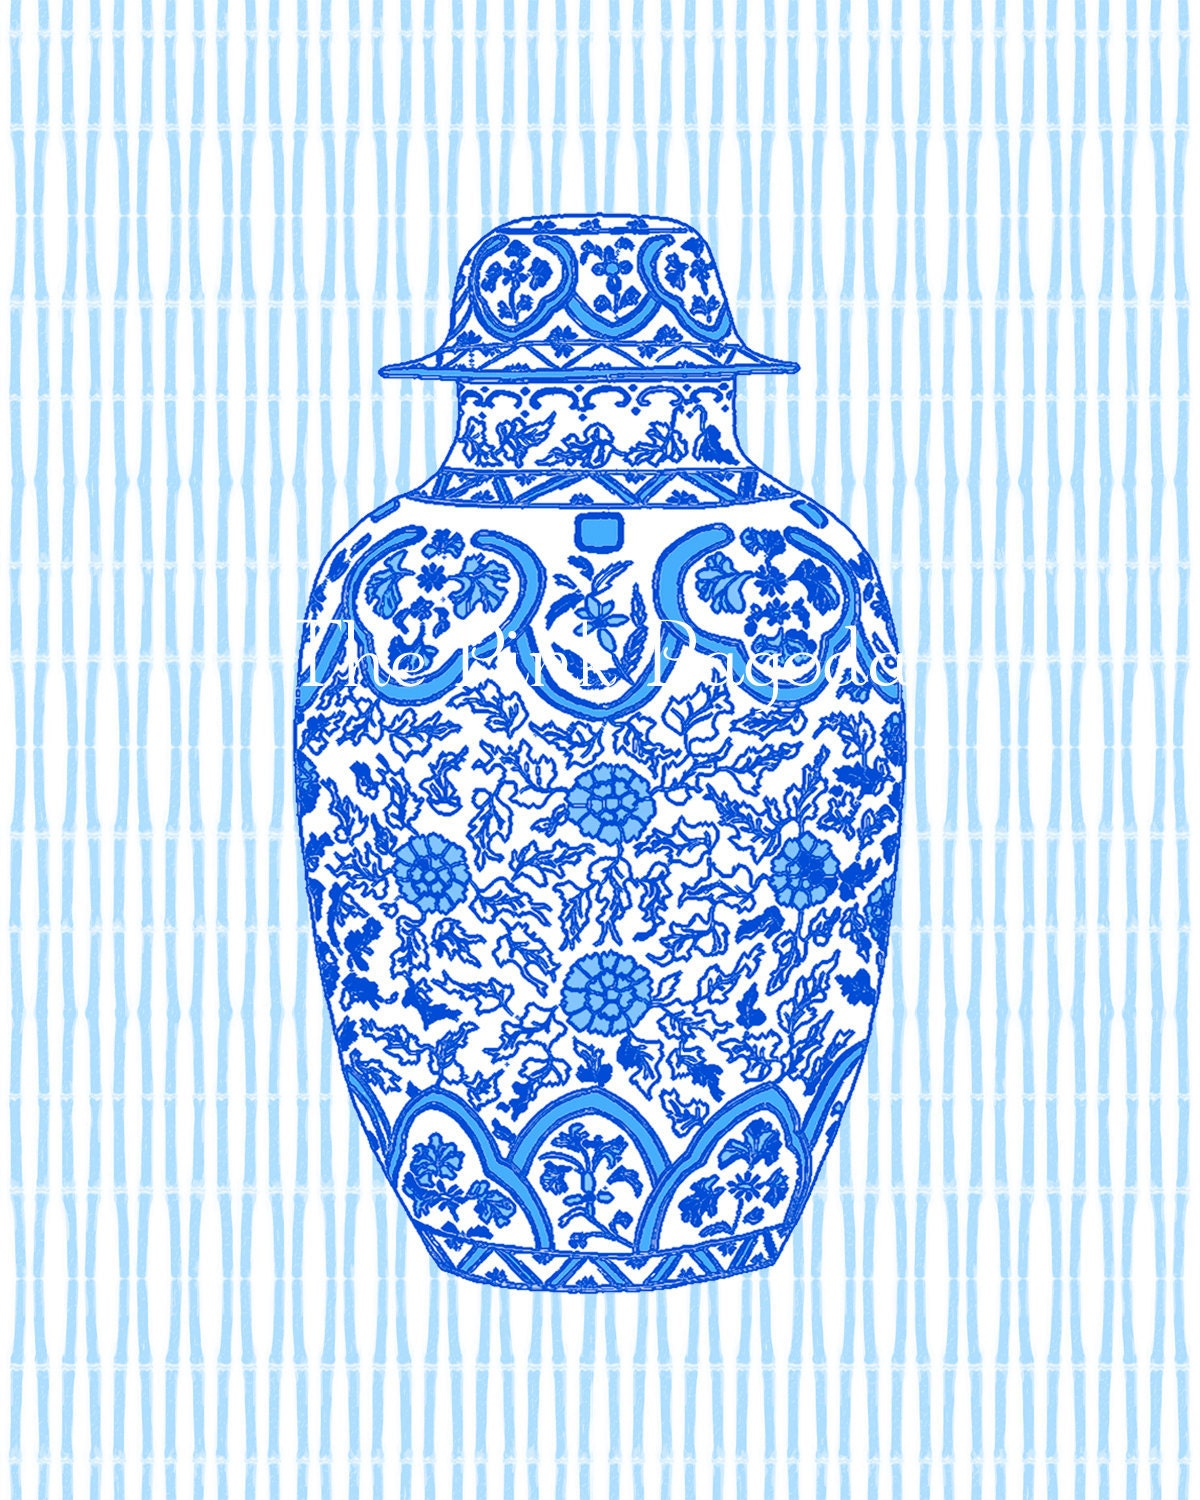 Ming Blue Chinoiserie Ginger Jar 8x10 Giclee - thepinkpagoda